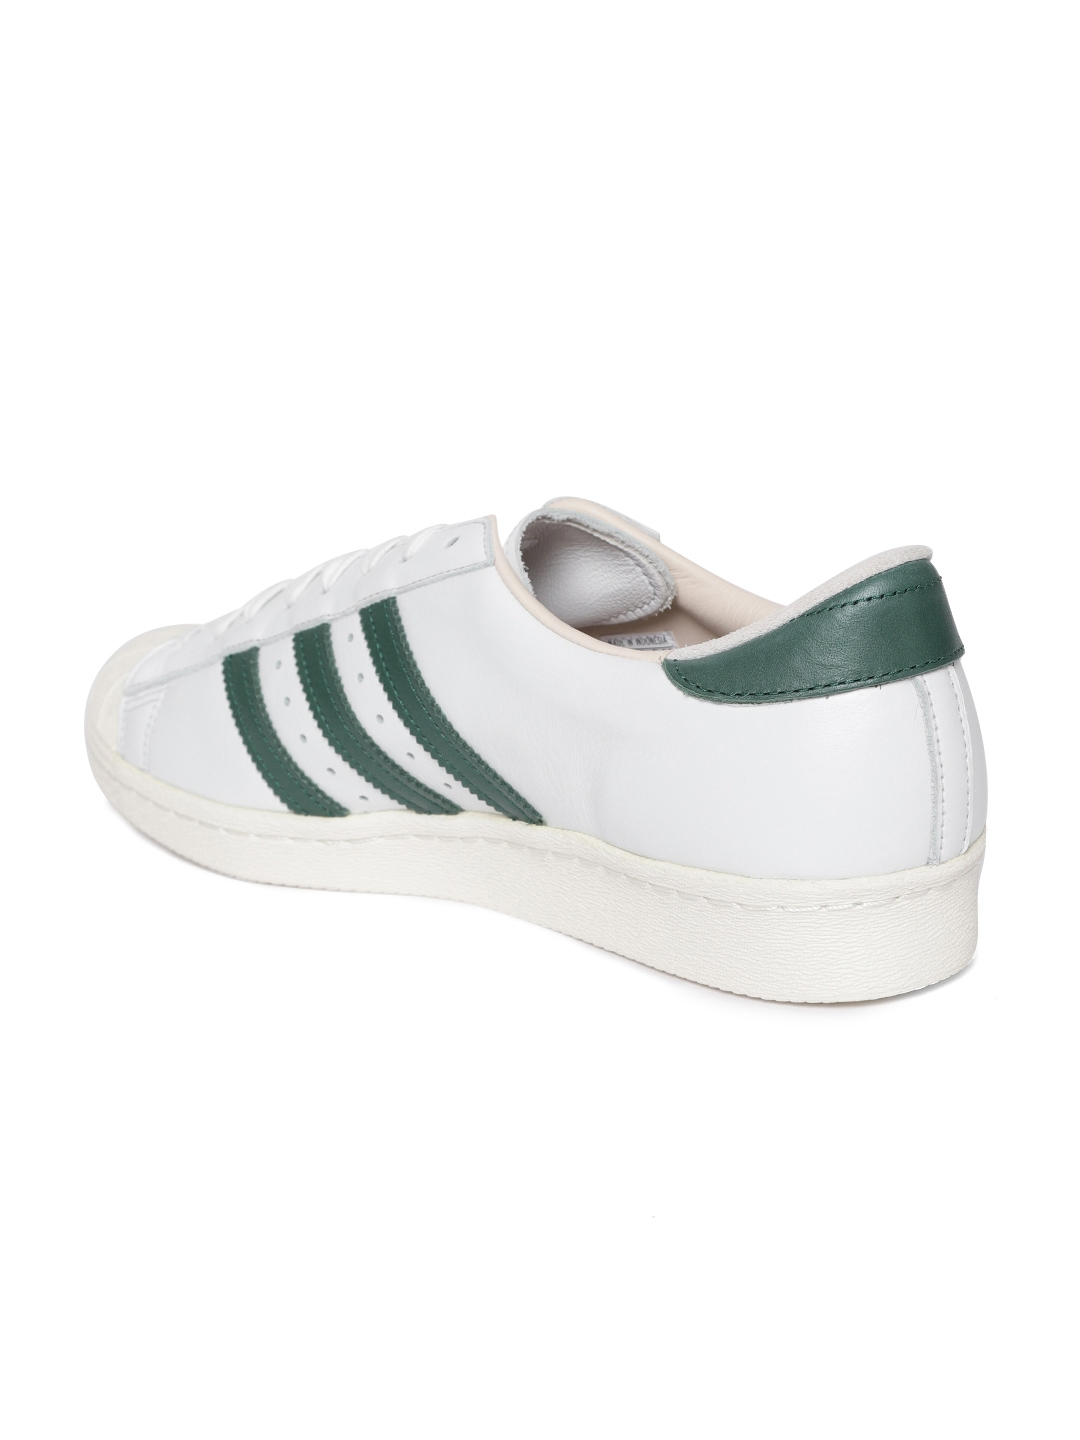 pick up 7220d f2e34 ADIDAS Originals Men White Superstar 80S RECON Leather Sneakers